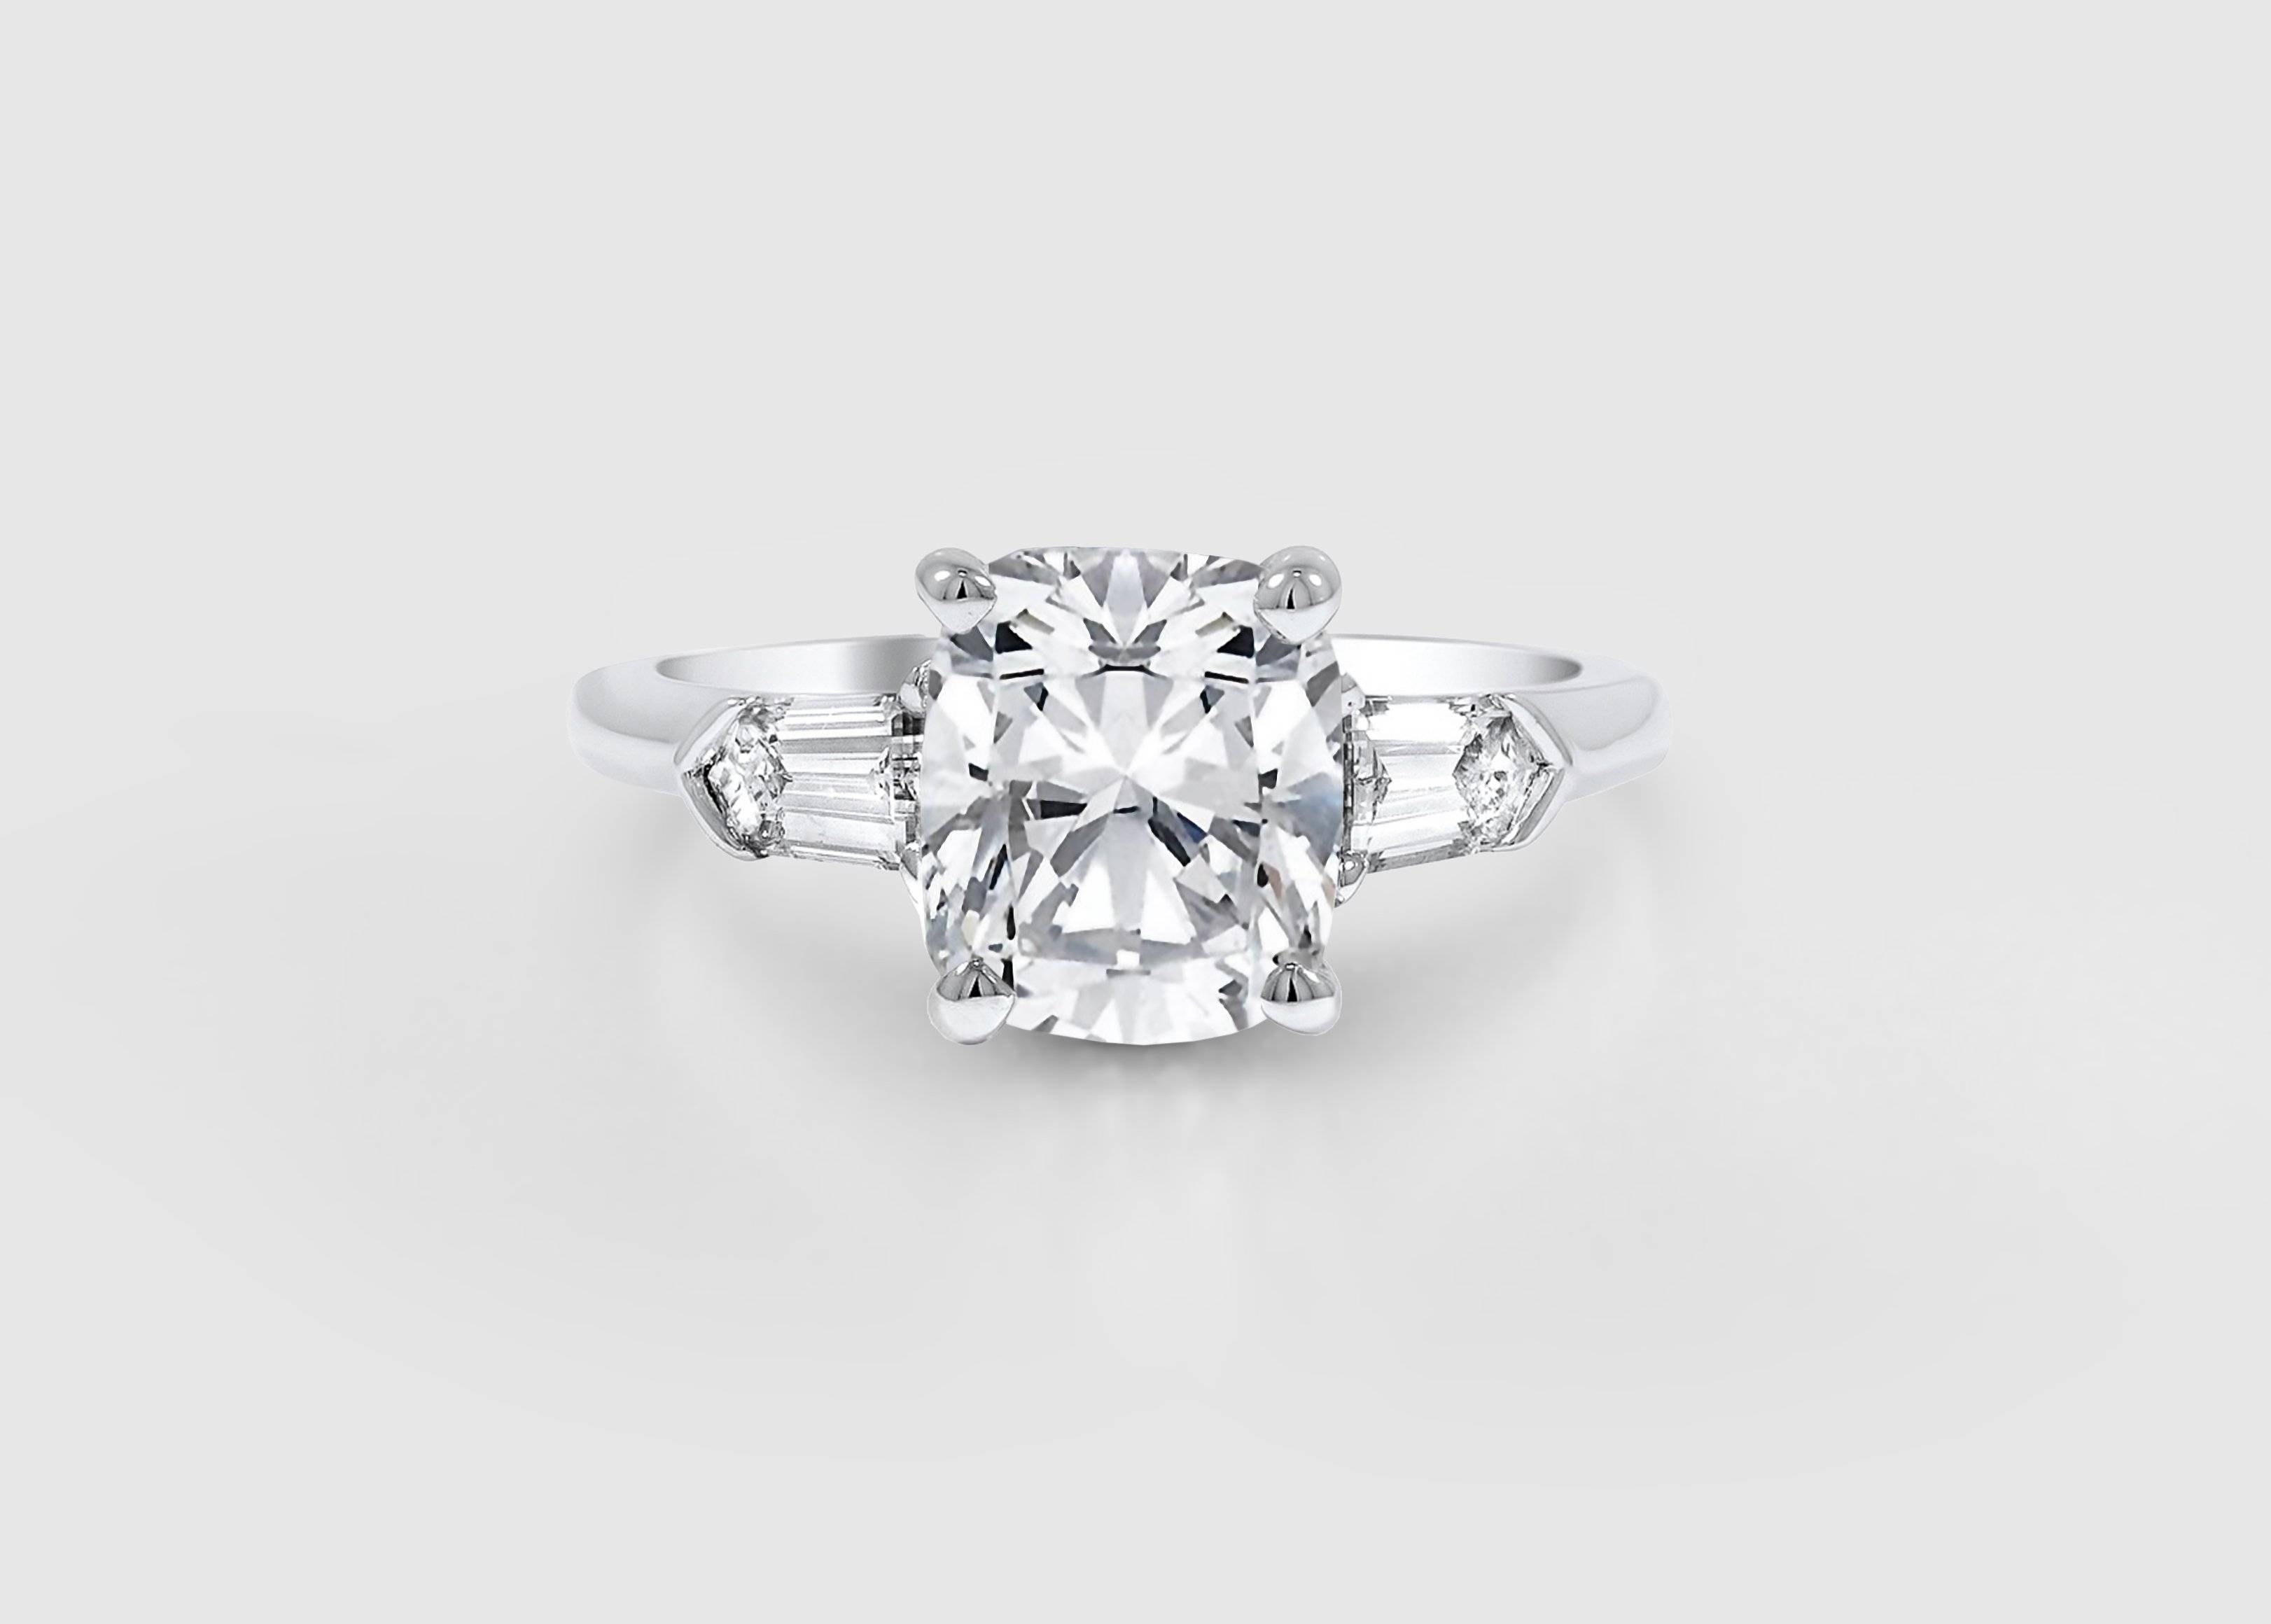 Engagement Ring Trends Of The Past, Present, And Future Within Engagement Rings Without Stone (View 4 of 15)